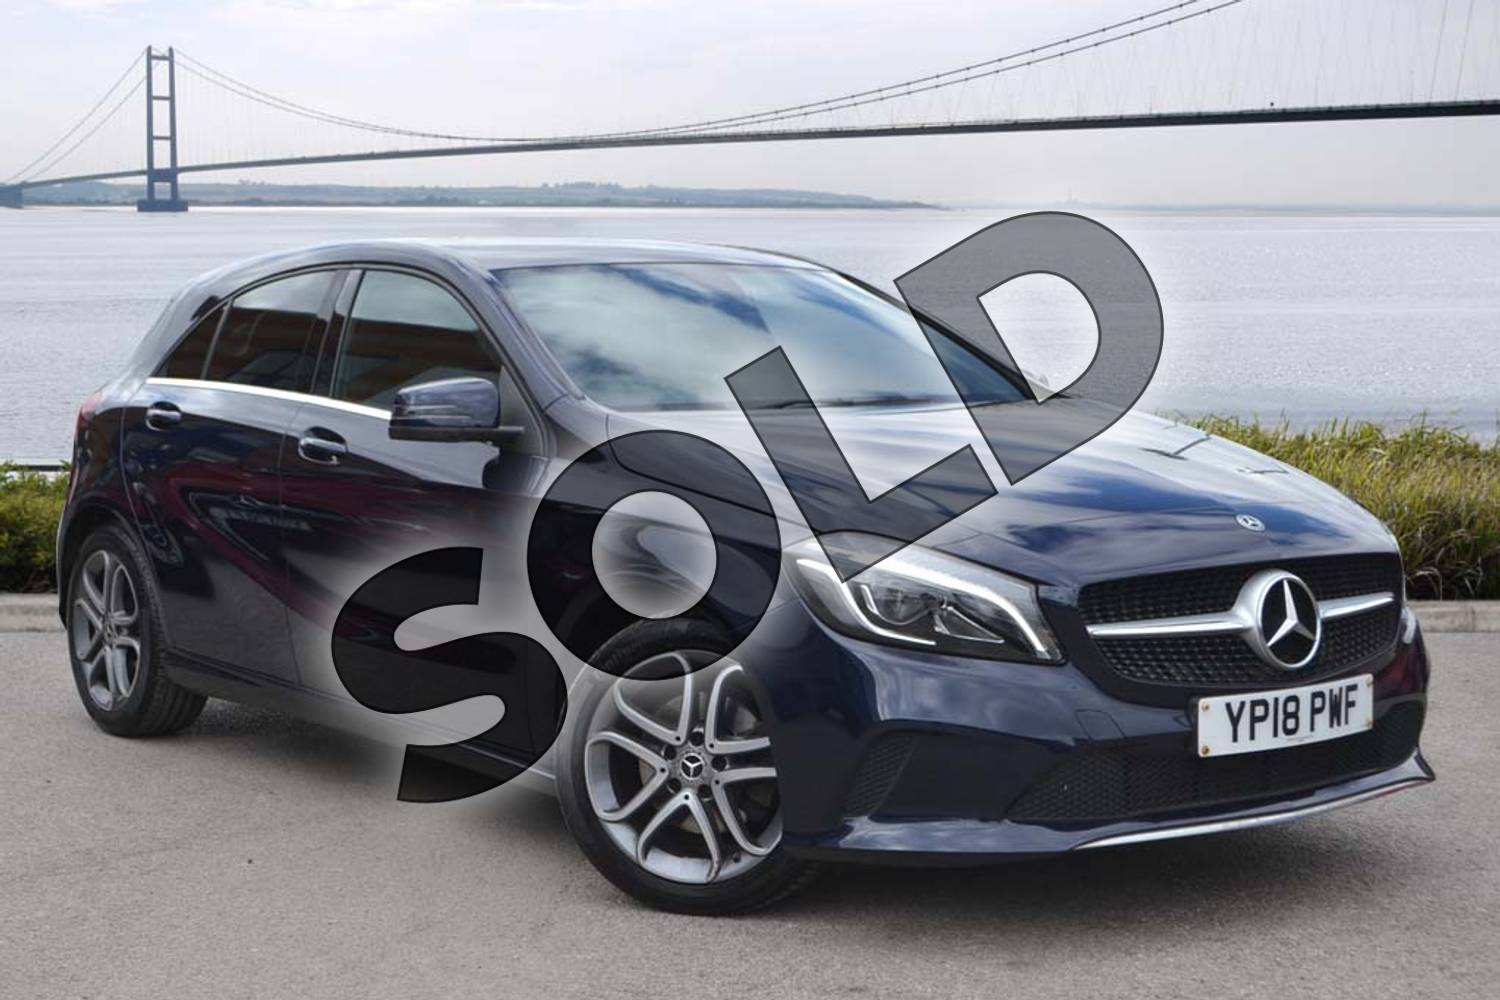 2018 Mercedes-Benz A Class Hatchback A180 Sport Edition 5dr in Cavansite Blue metallic at Mercedes-Benz of Hull